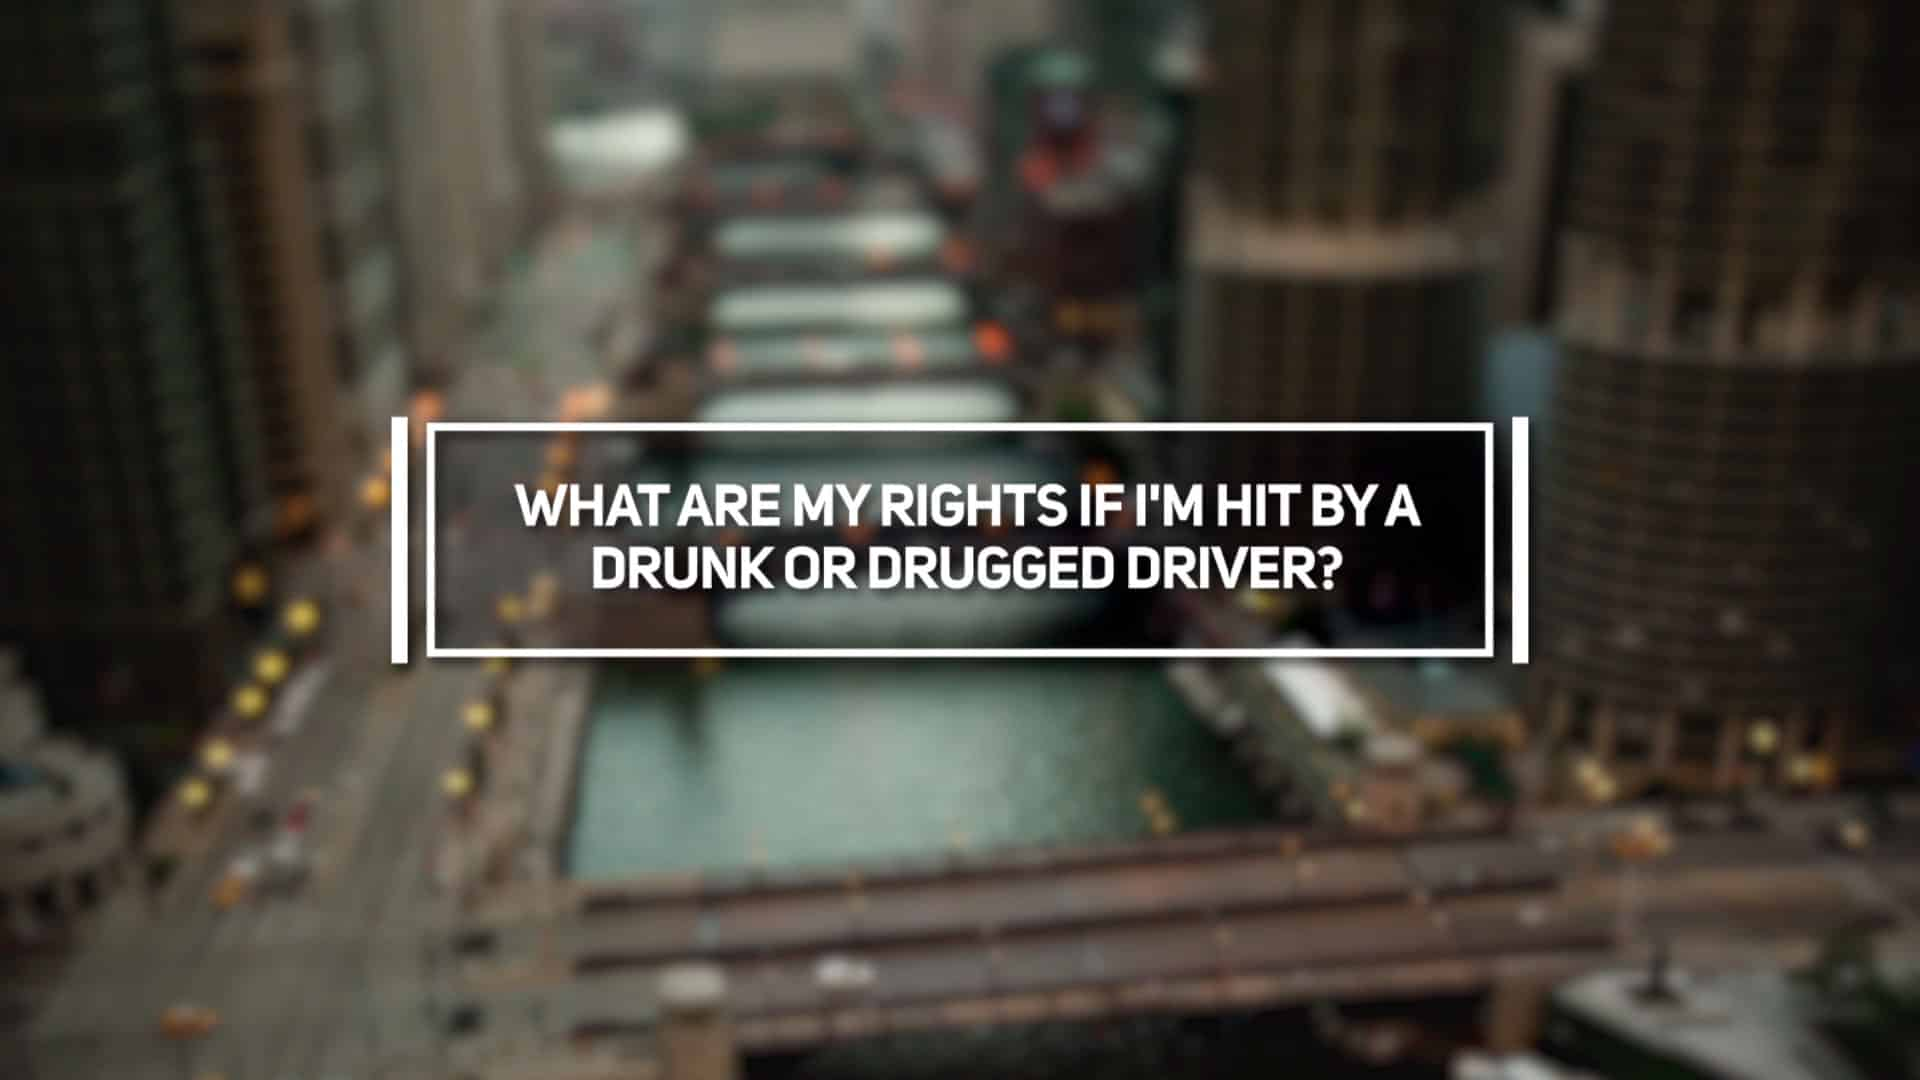 What Are My Rights If I'm Hit By a Drunk or Drugged Driver?